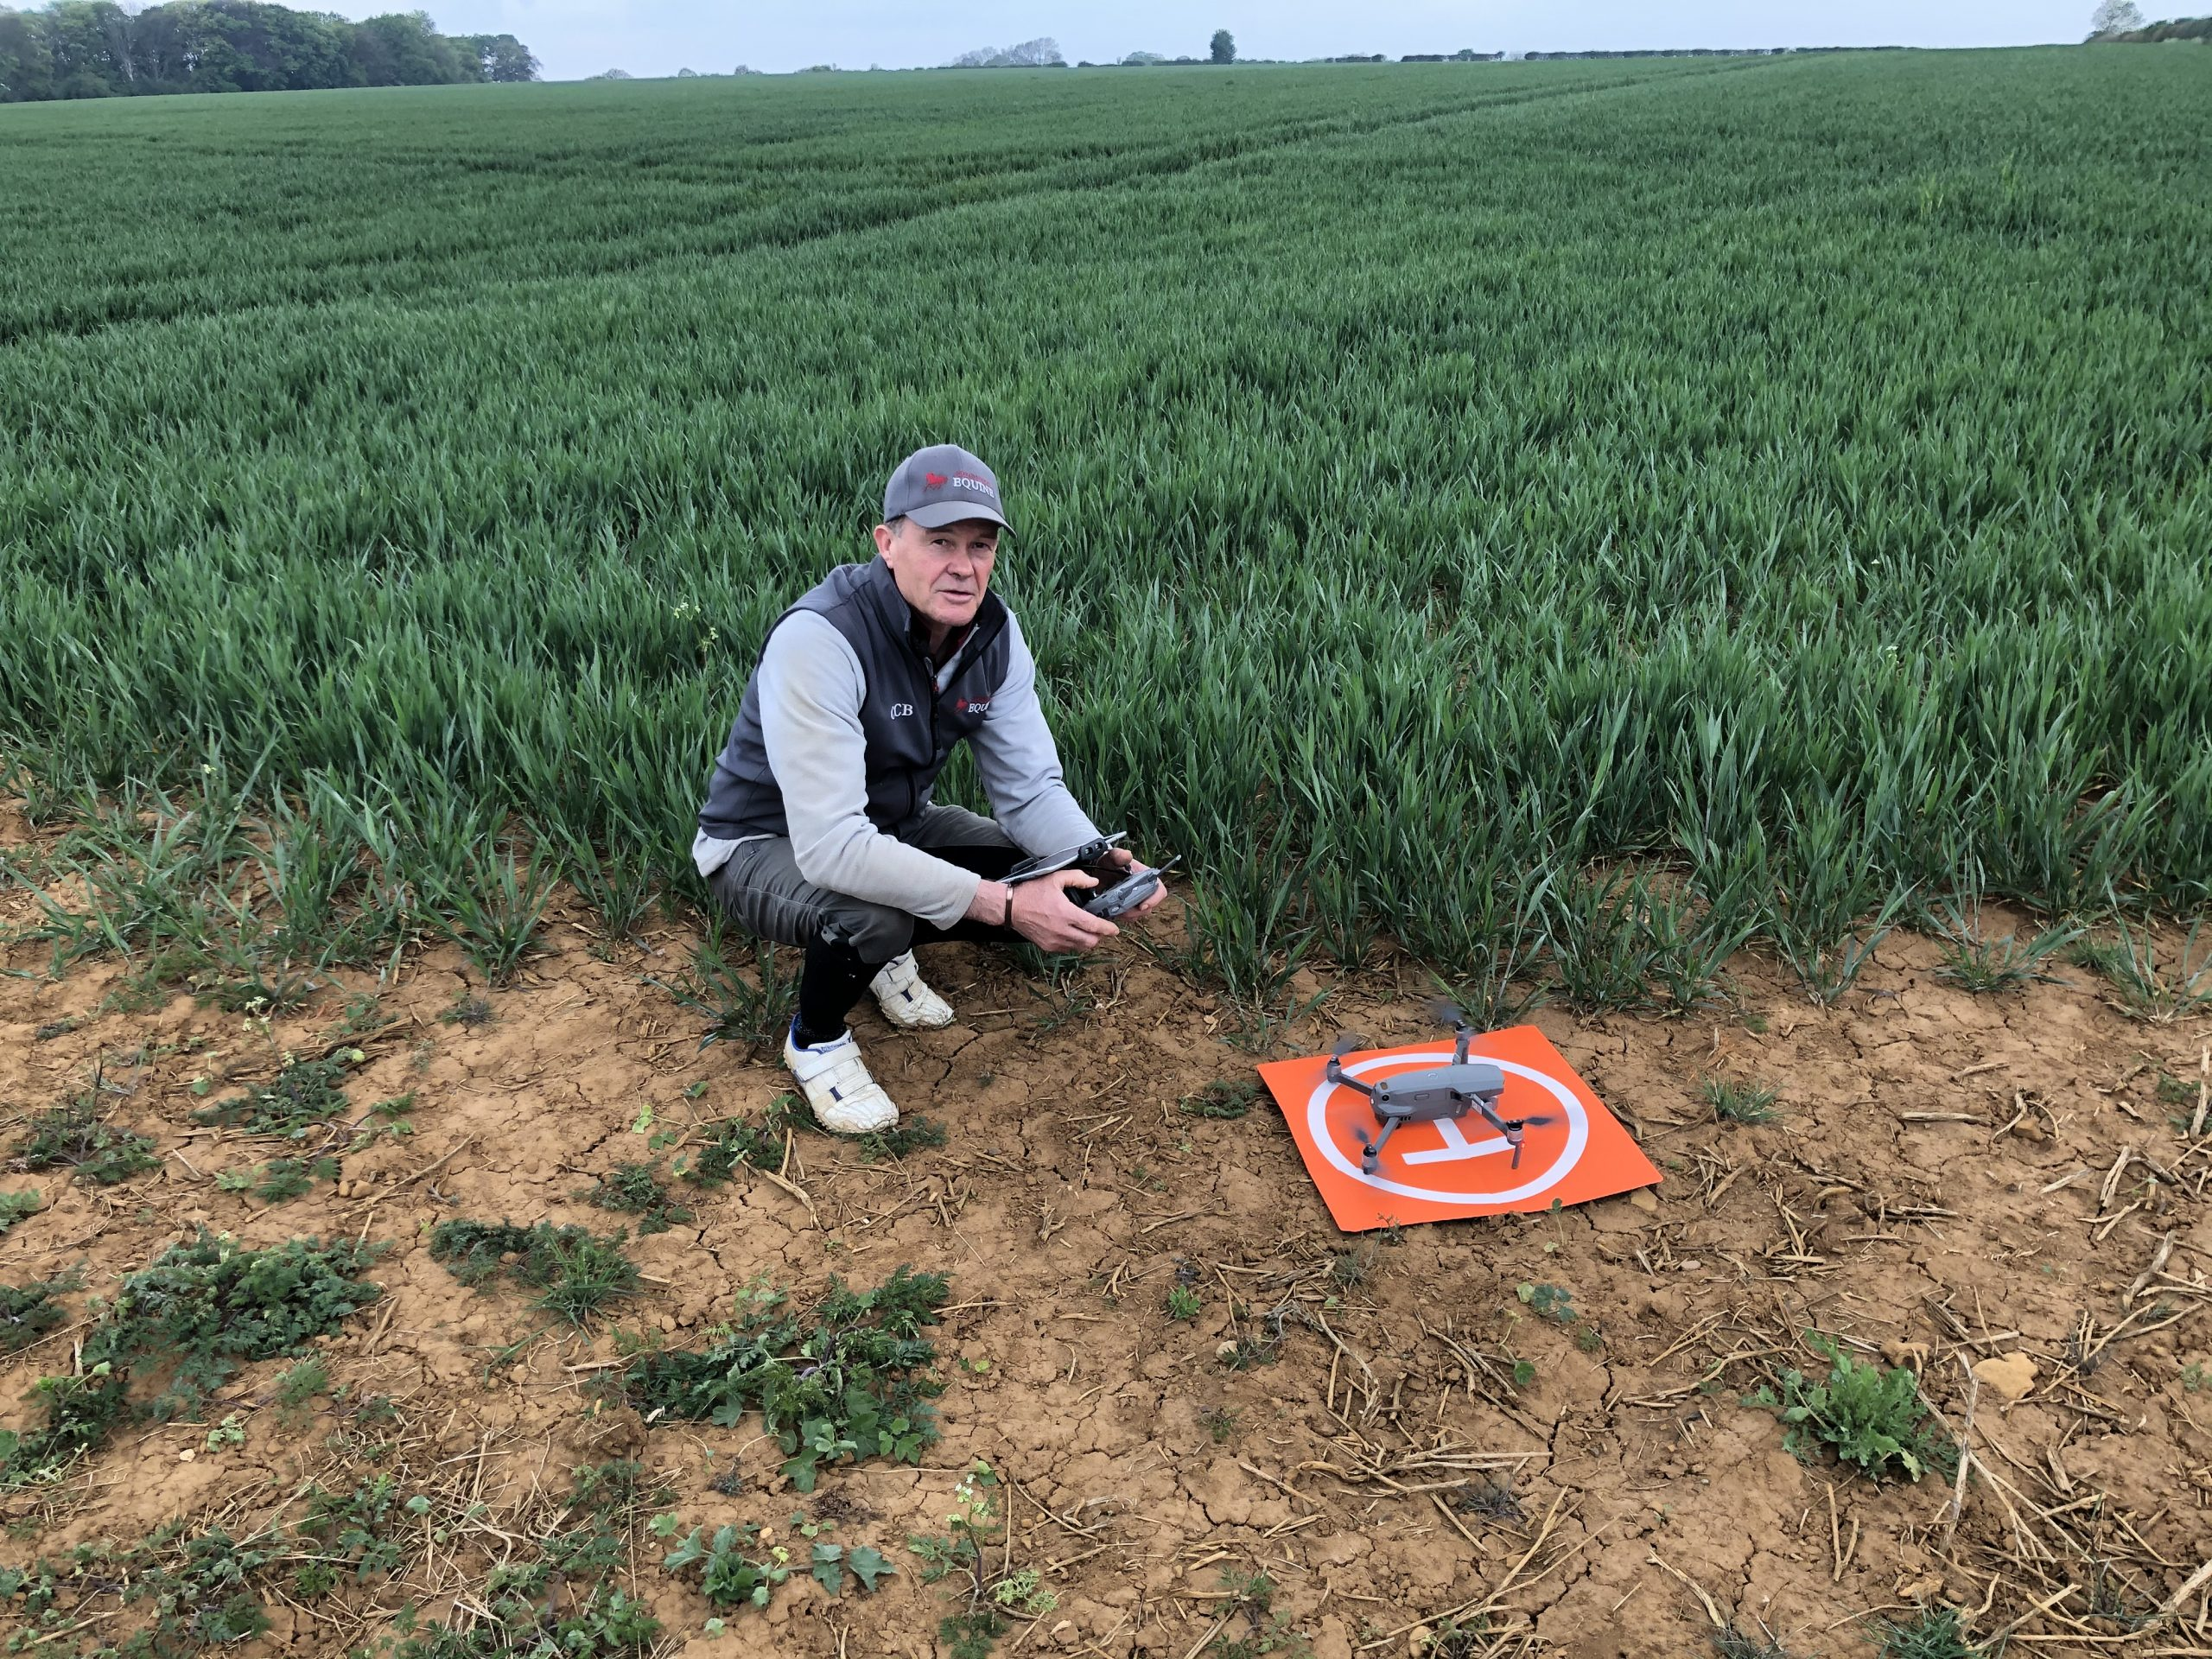 Chris Bealby Integrates Drone use into his Farm